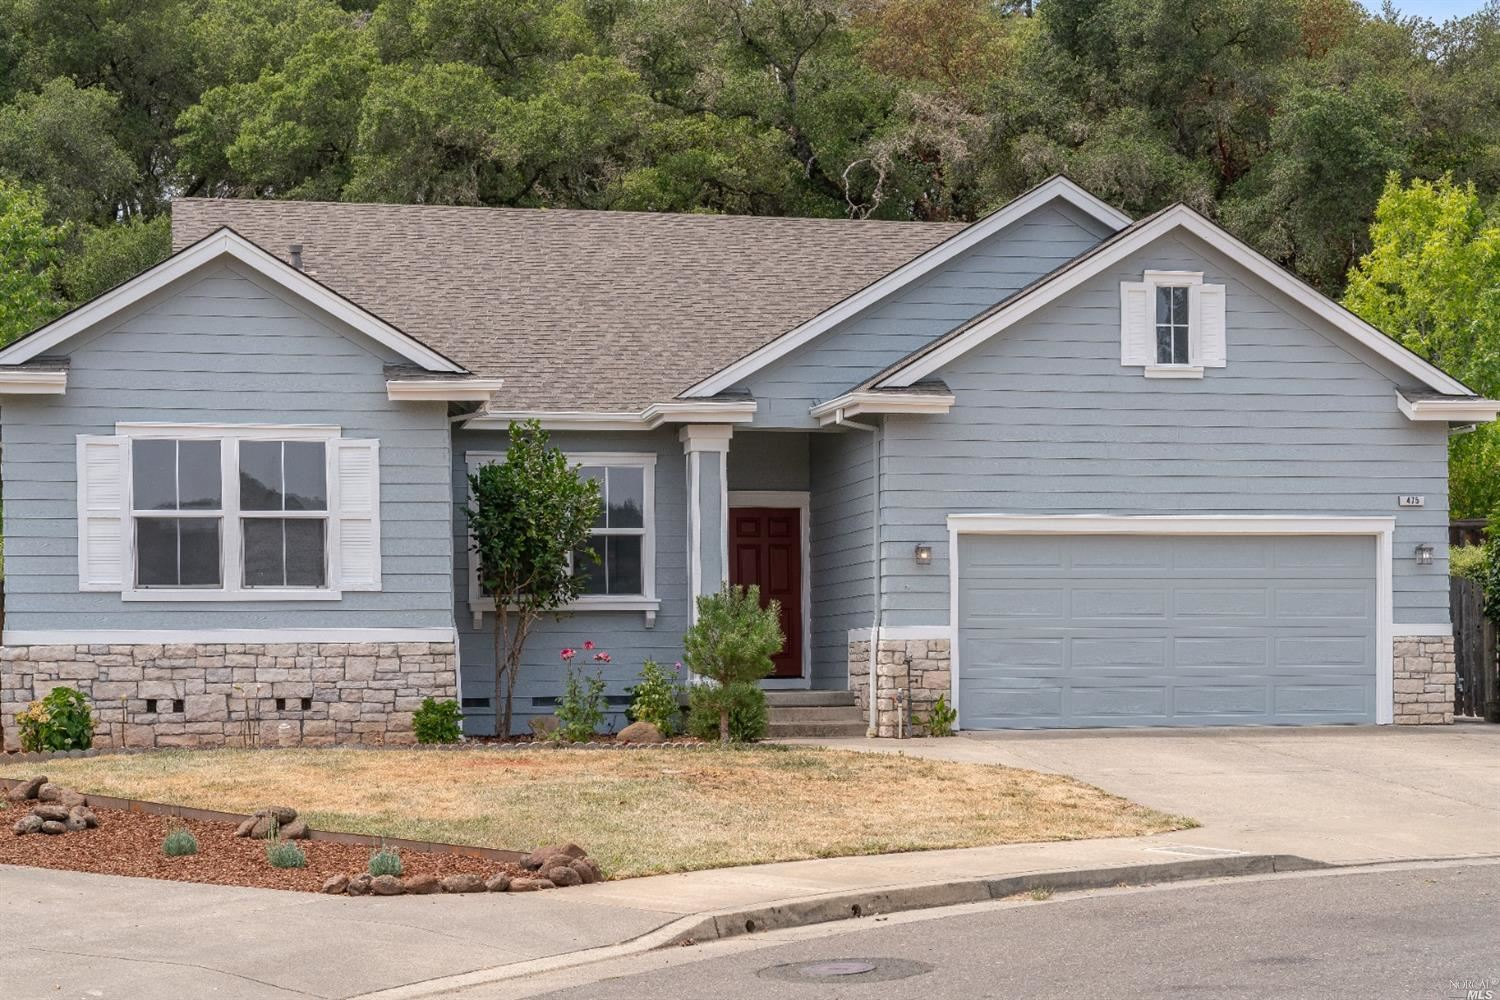 475 Gamay Drive, Cloverdale, CA 95425 - MLS#: 321070532